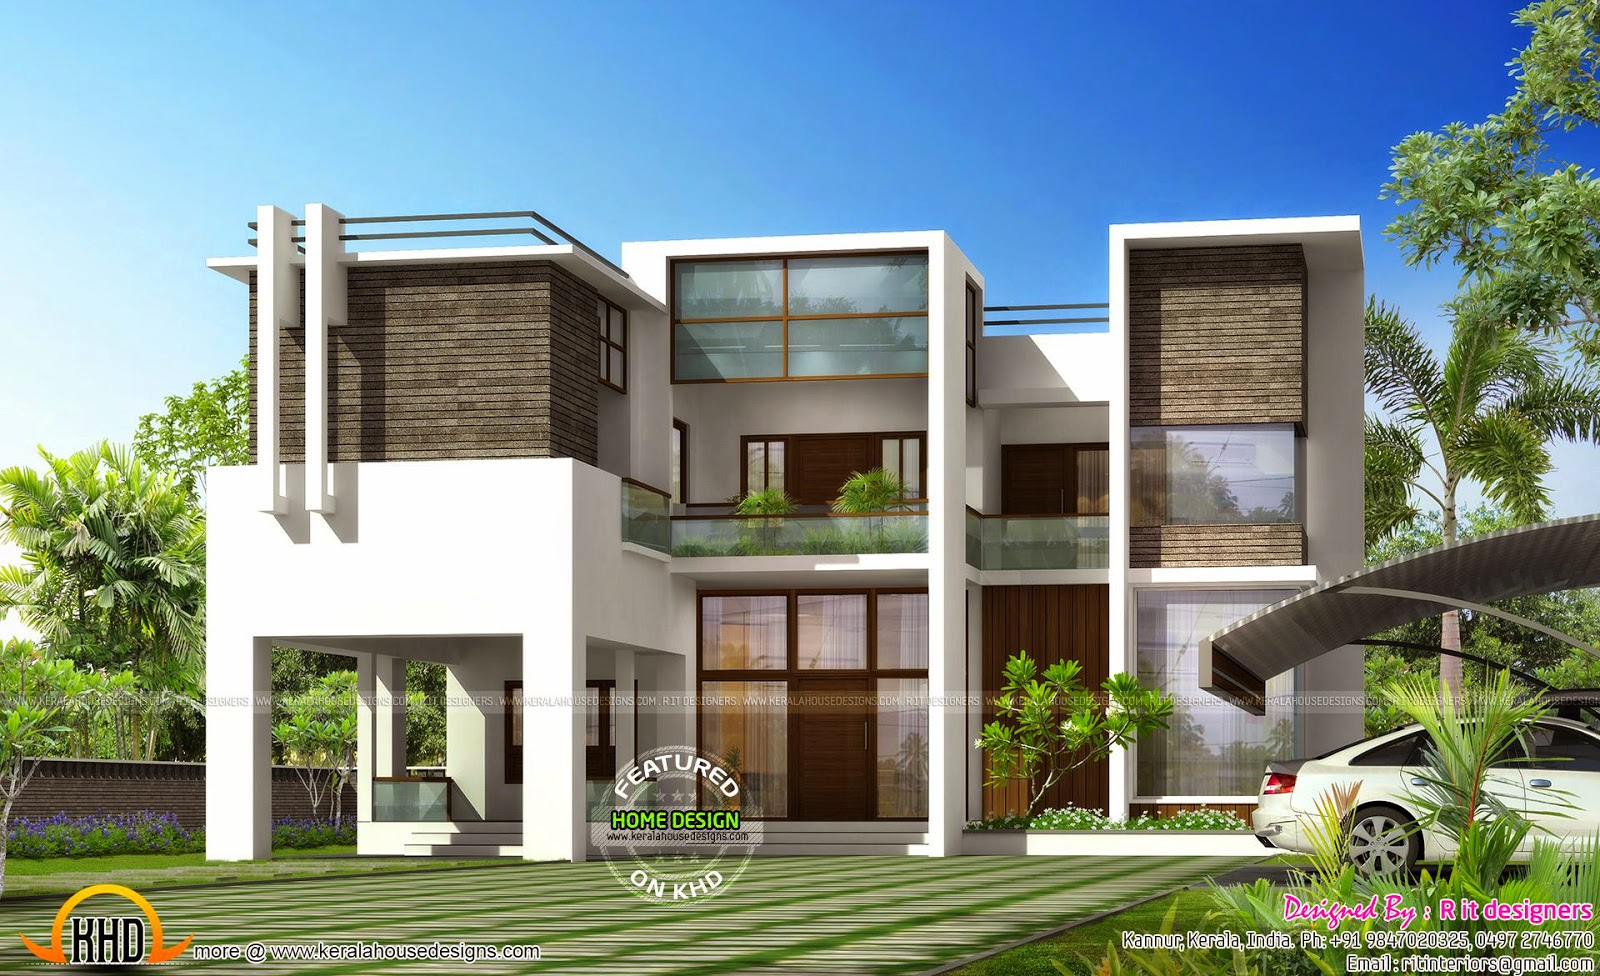 One Square Meter In Square Feet January 2015 Kerala Home Design And Floor Plans